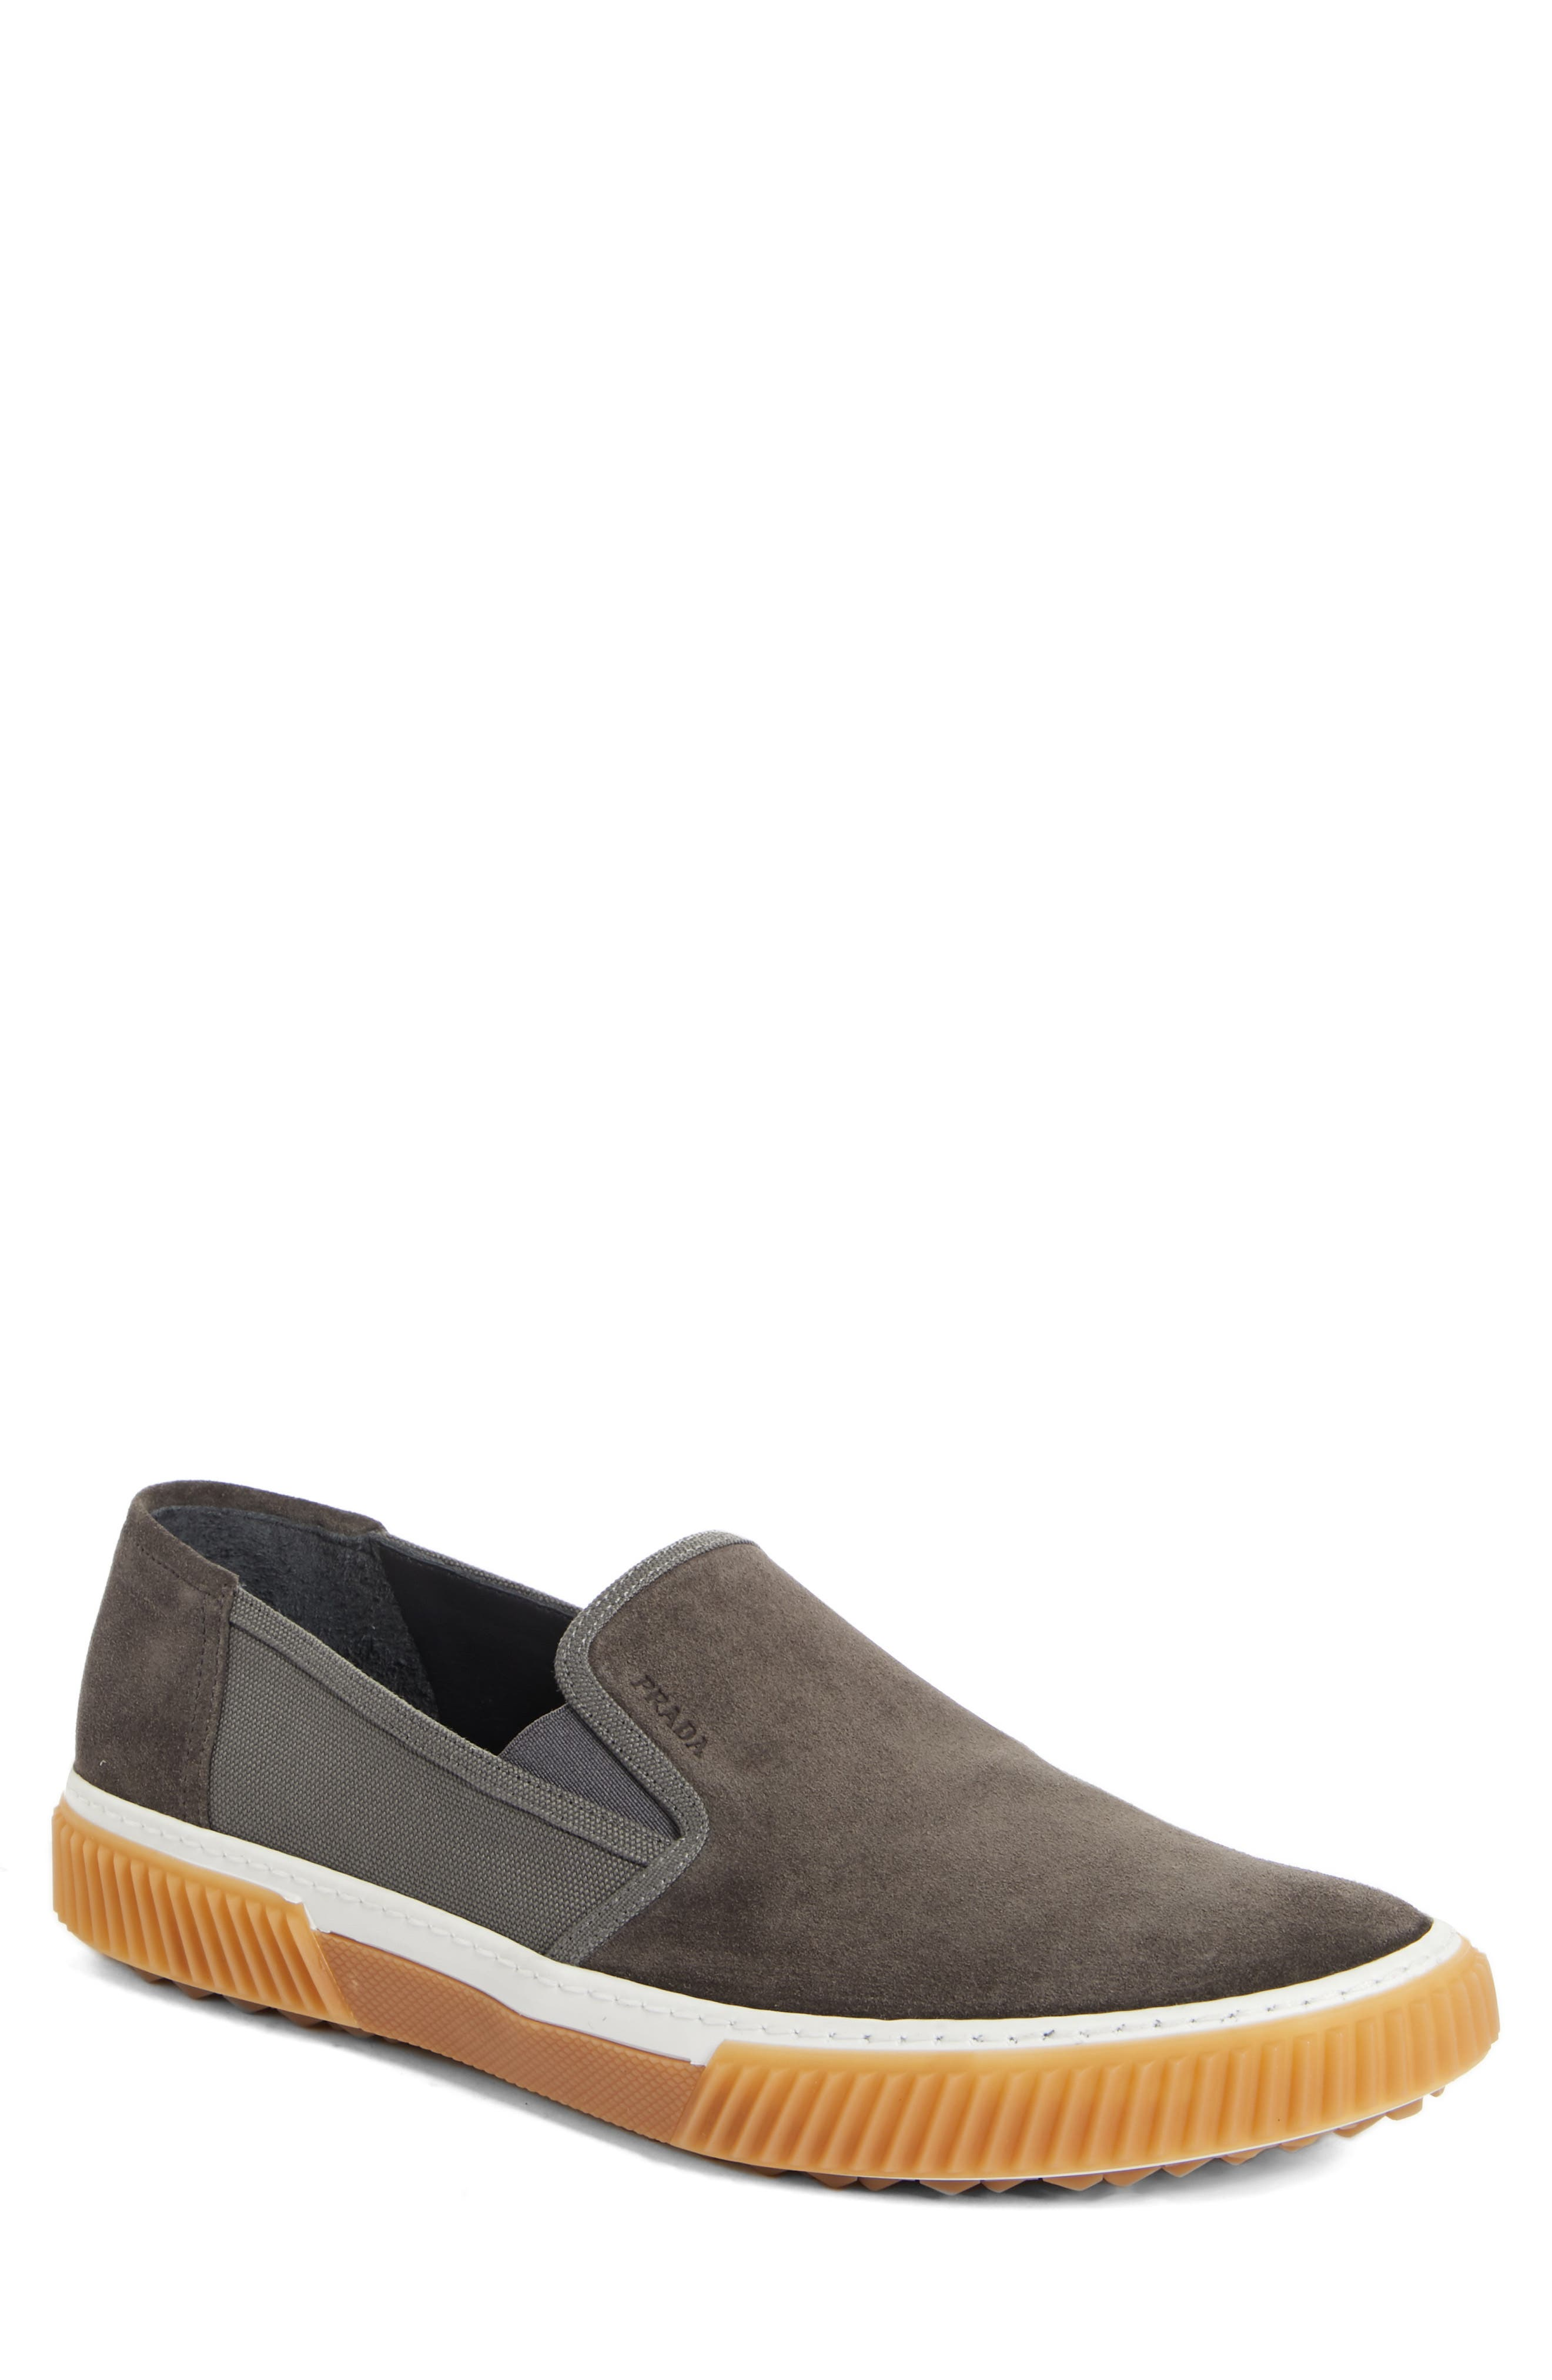 Linea Rossa Slip-On,                             Main thumbnail 1, color,                             GREY